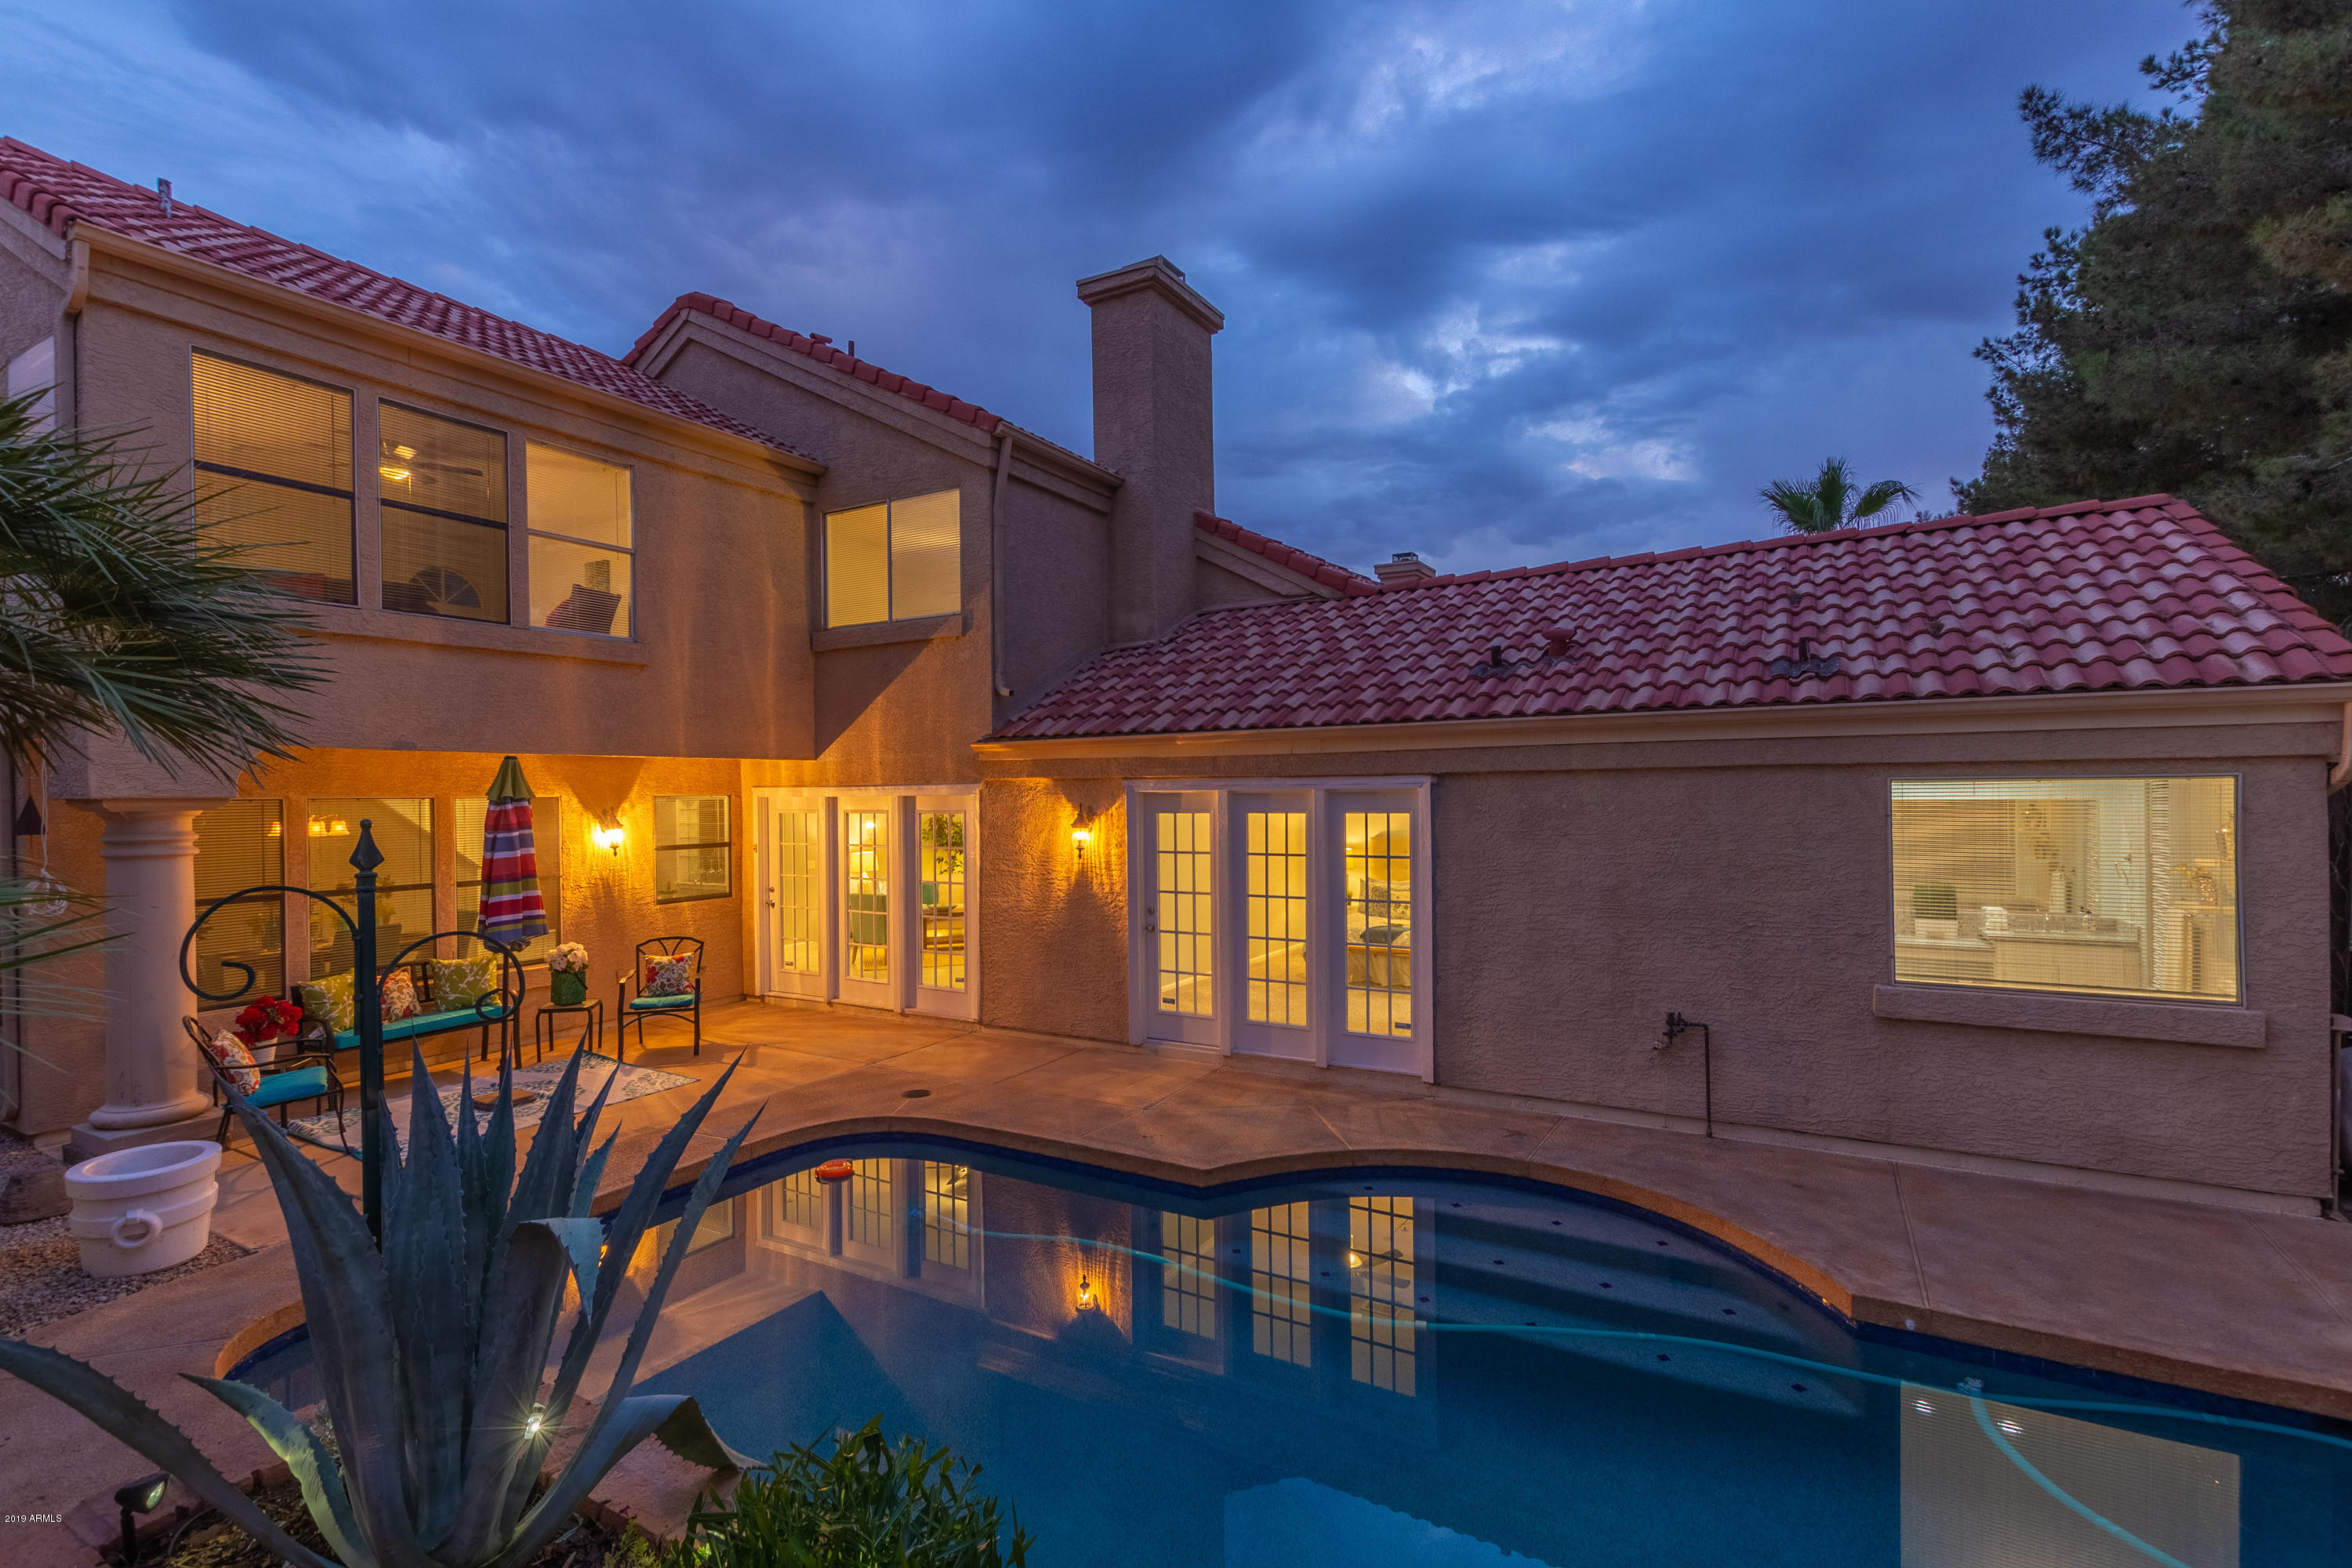 MLS 5955899 11242 E Mercer Lane, Scottsdale, AZ 85259 Scottsdale AZ Private Pool